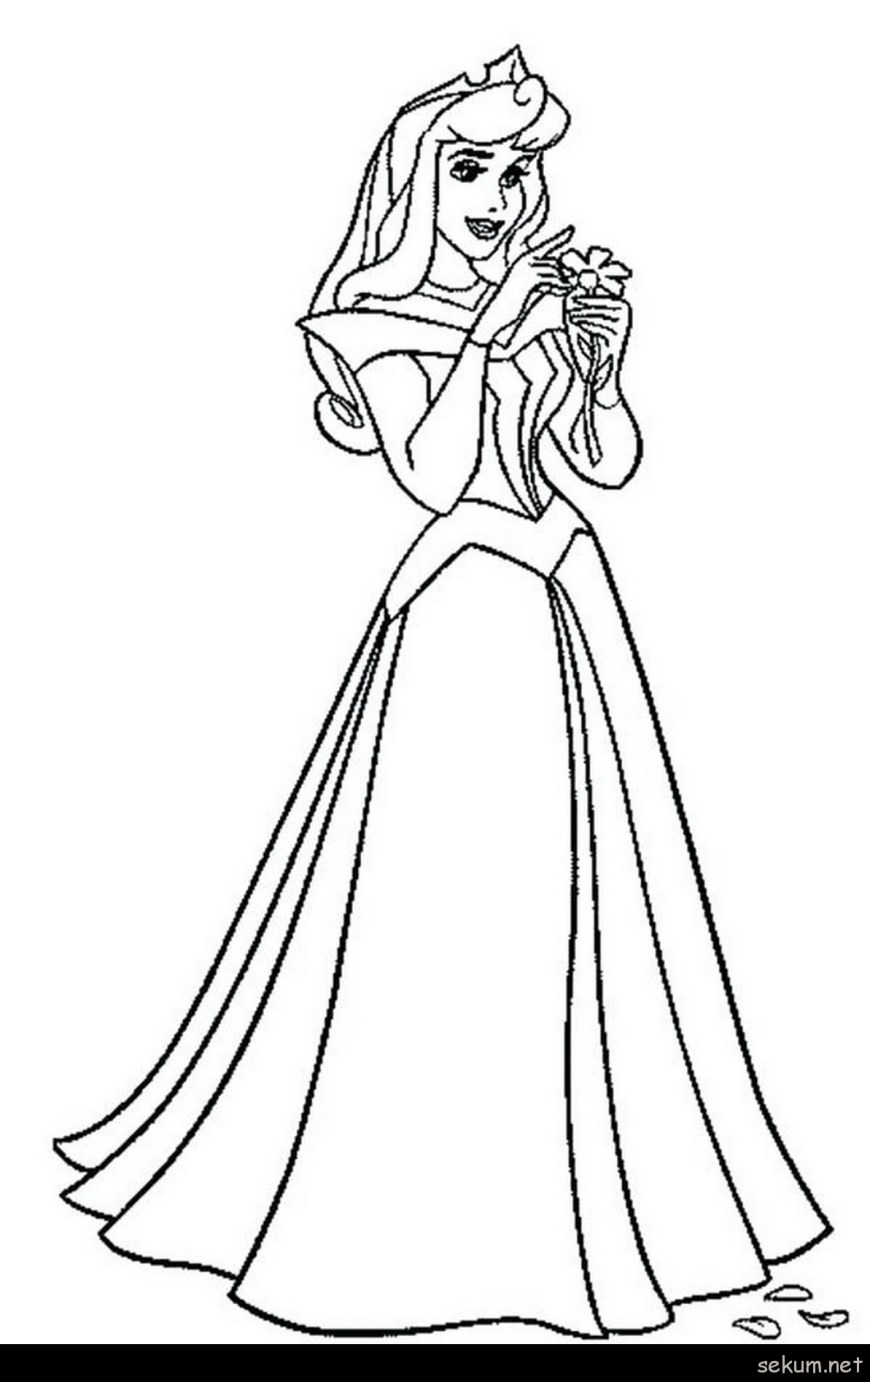 Aurora Coloring Pages Coloring Pages Sleeping Beauty Princess Aurora Count Her Luck In